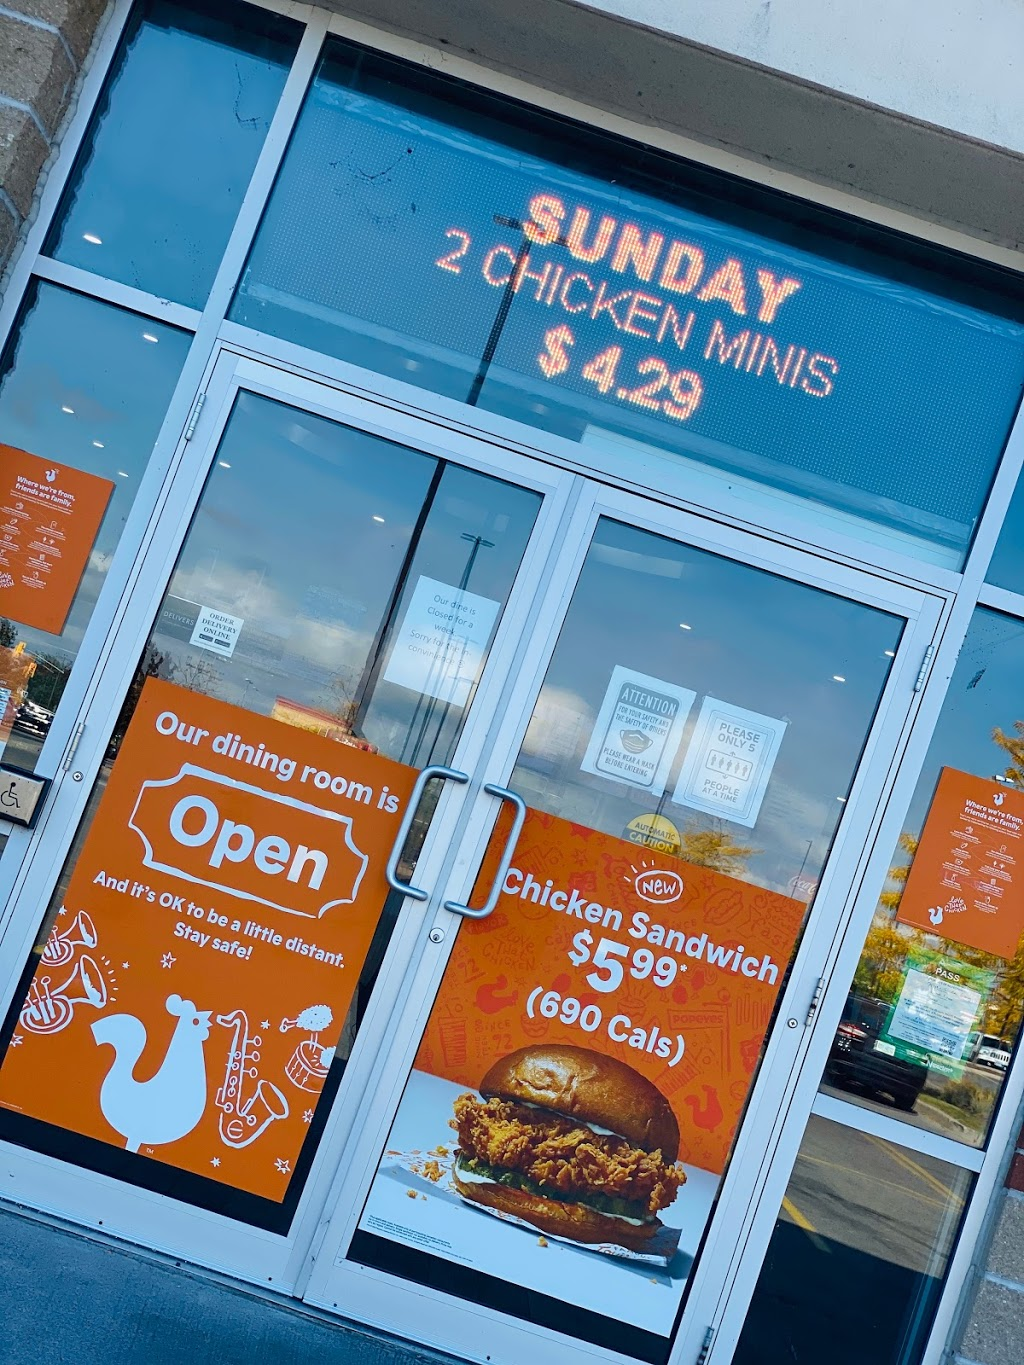 Popeyes Louisiana Kitchen Cobourg | restaurant | 75 Strathy Rd Unit 4, Cobourg, ON K9A 5W8, Canada | 9053723500 OR +1 905-372-3500